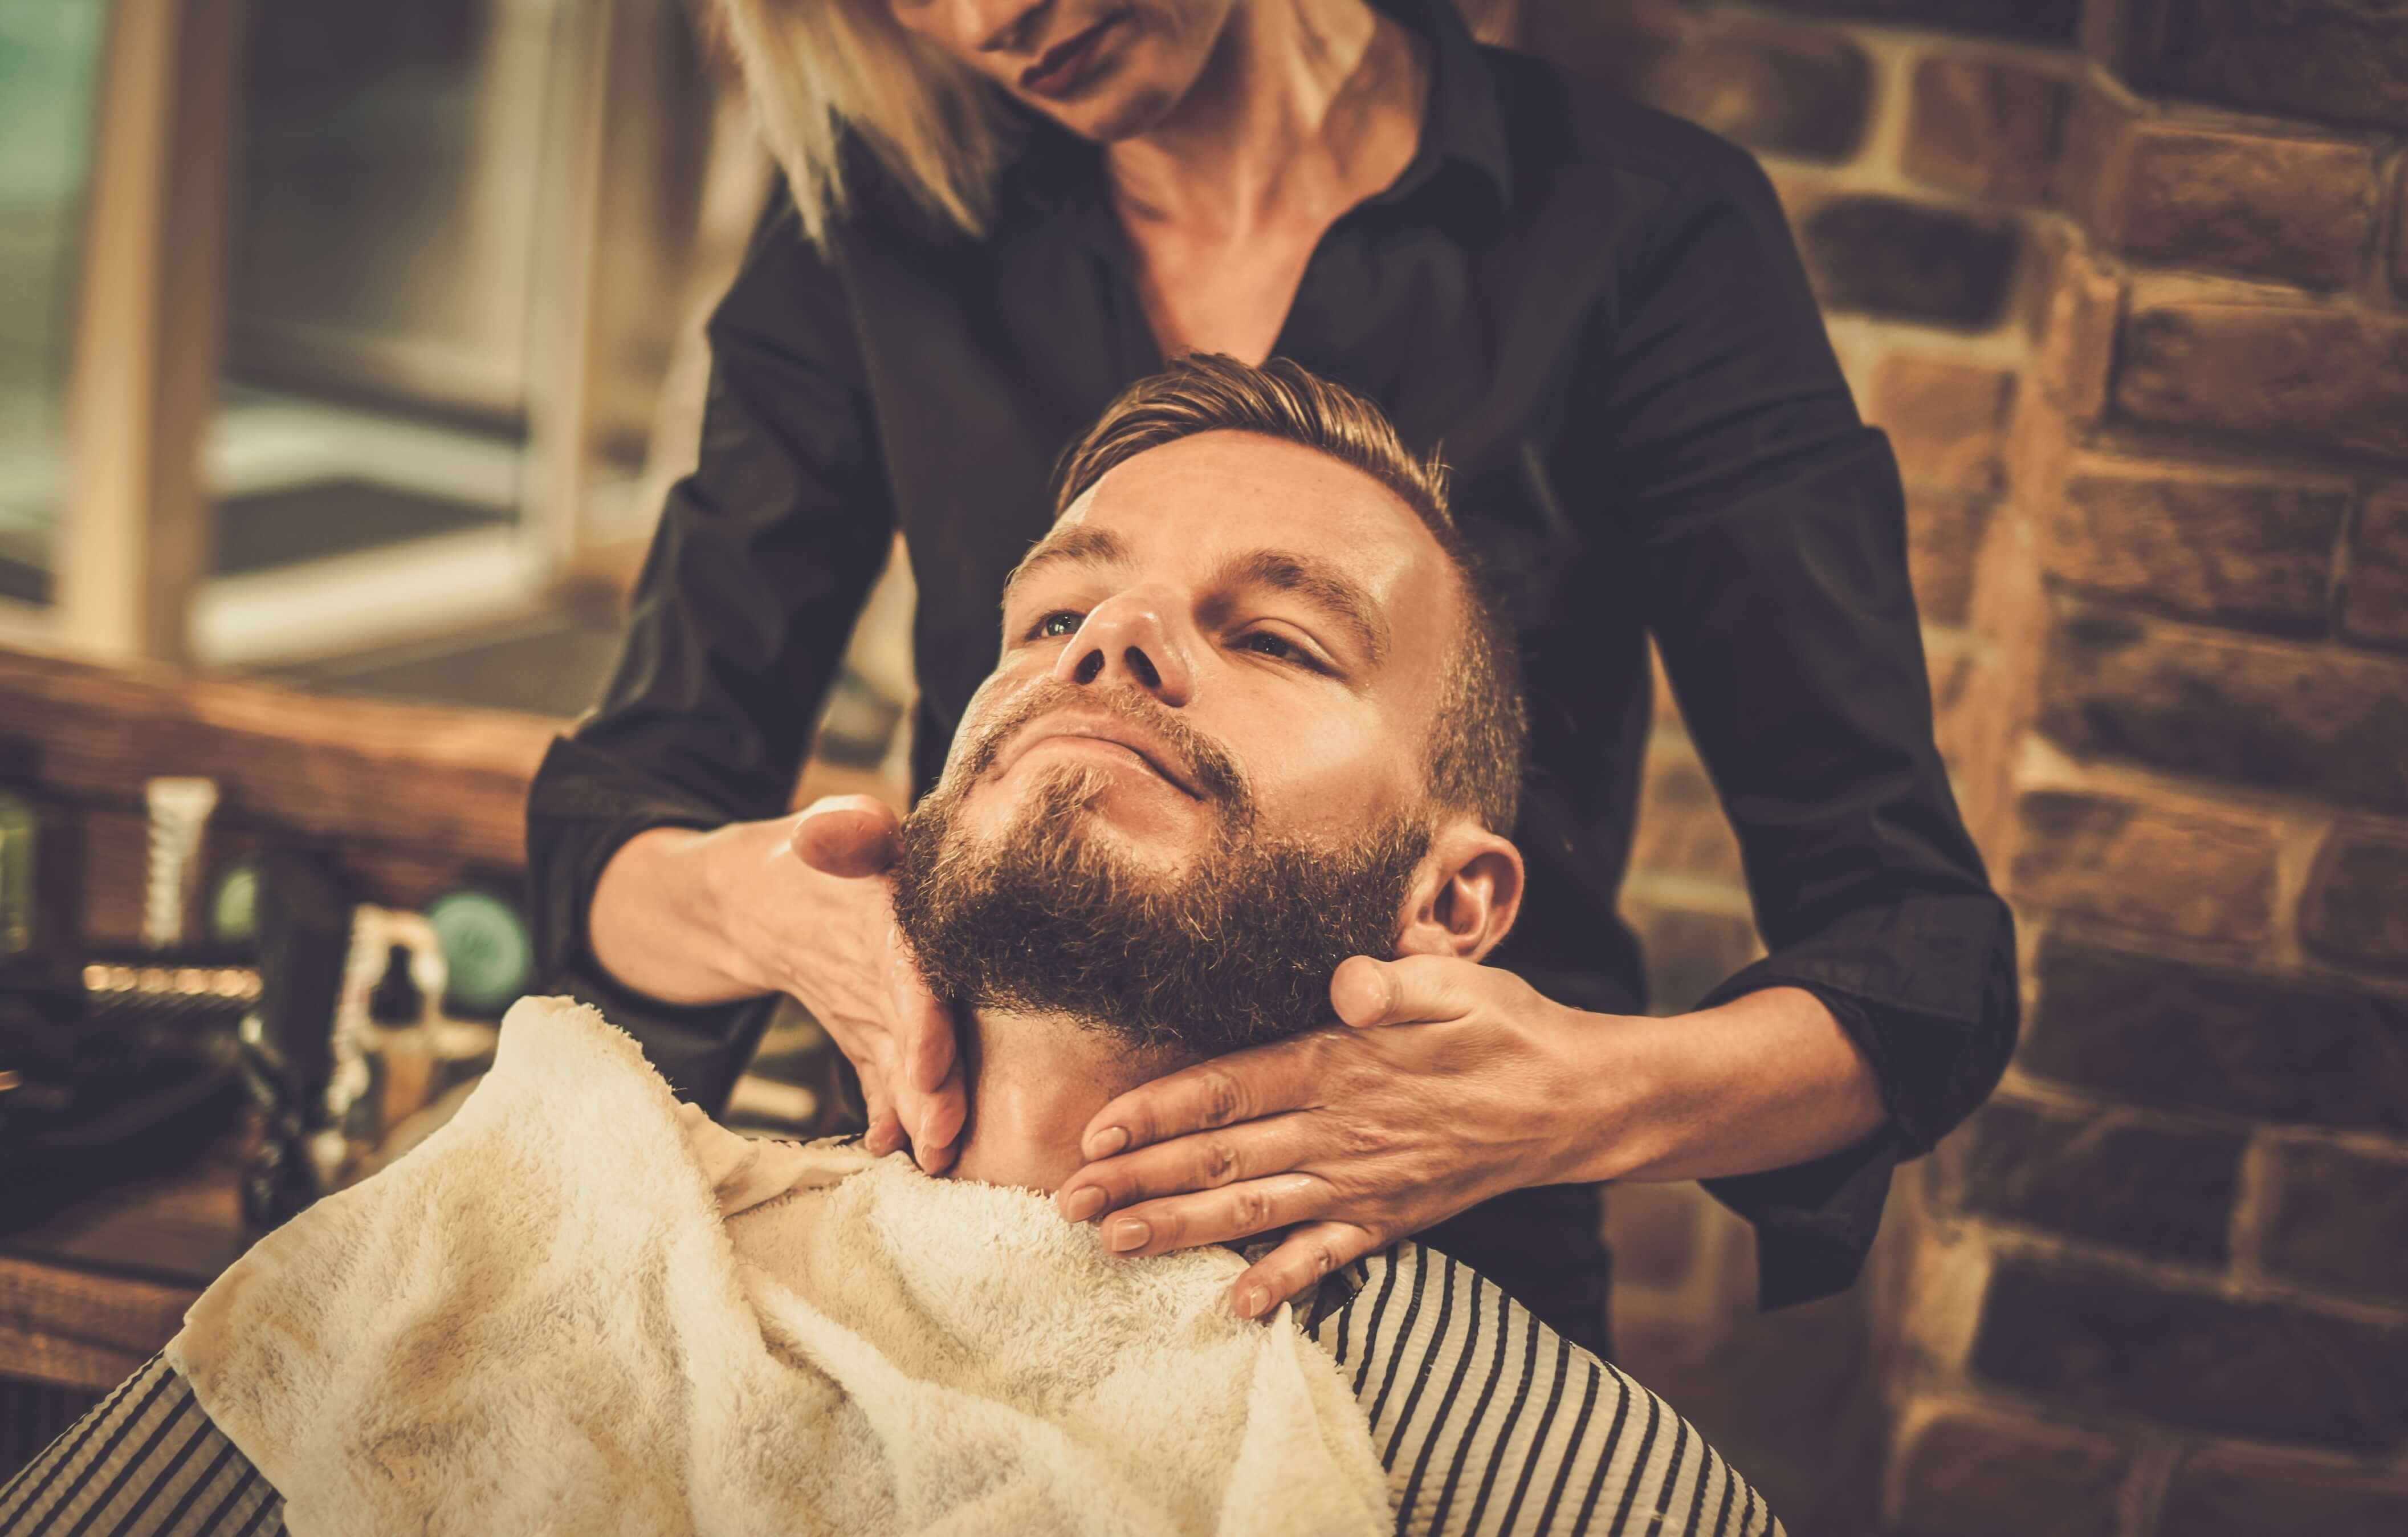 A man getting his beard groomedby a woman.